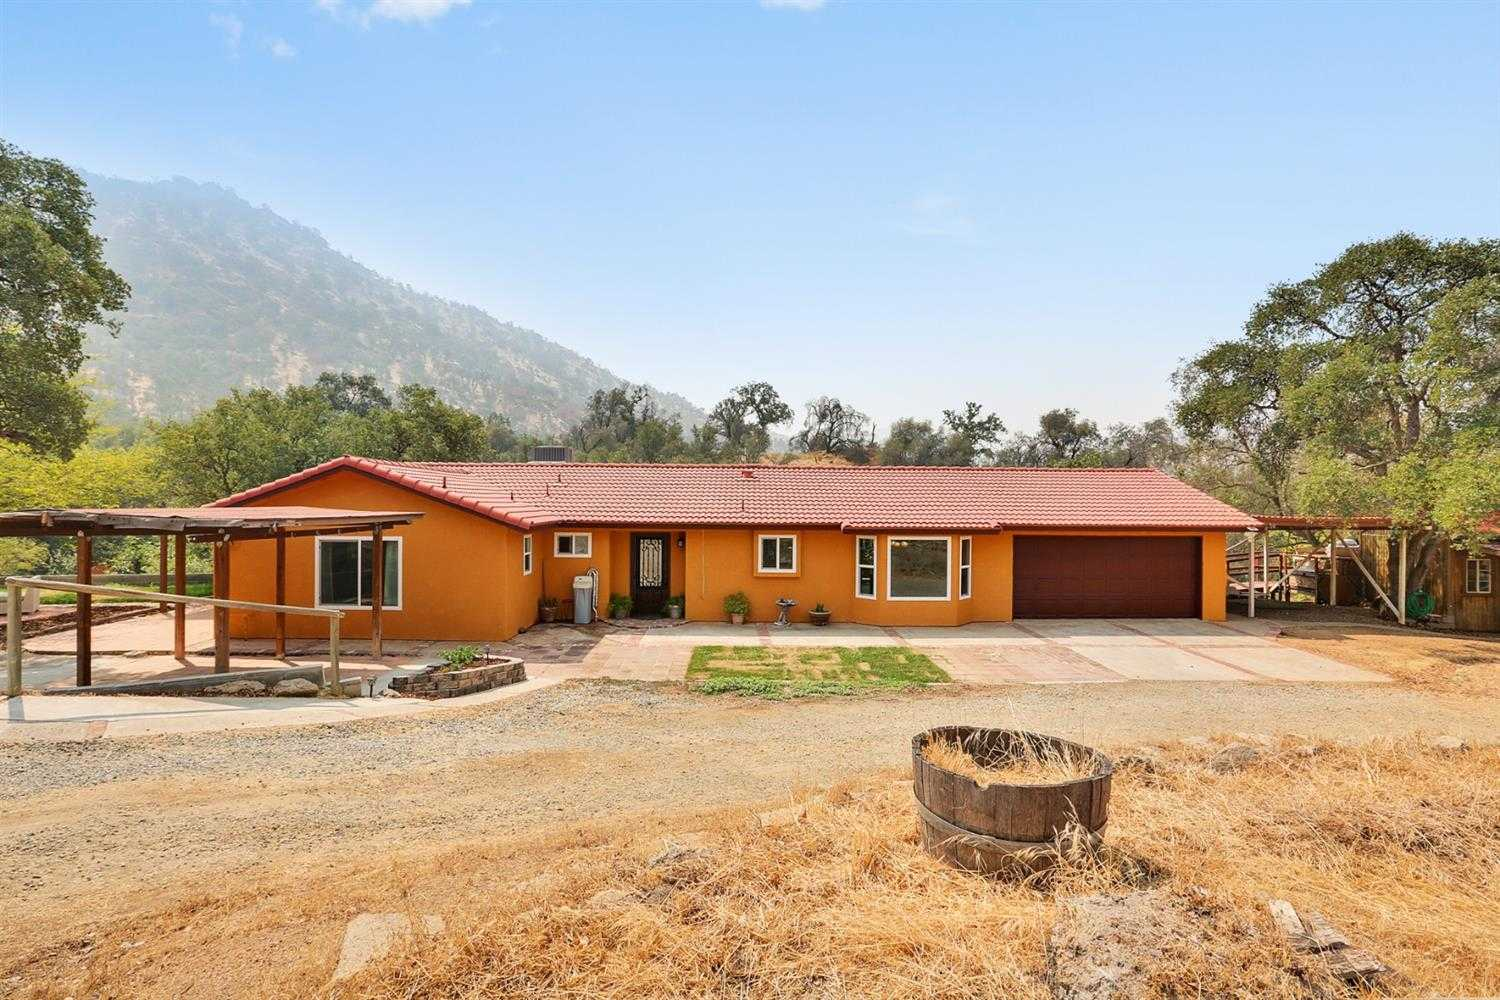 35548 Hummingbird Ln Squaw Valley, CA 93675